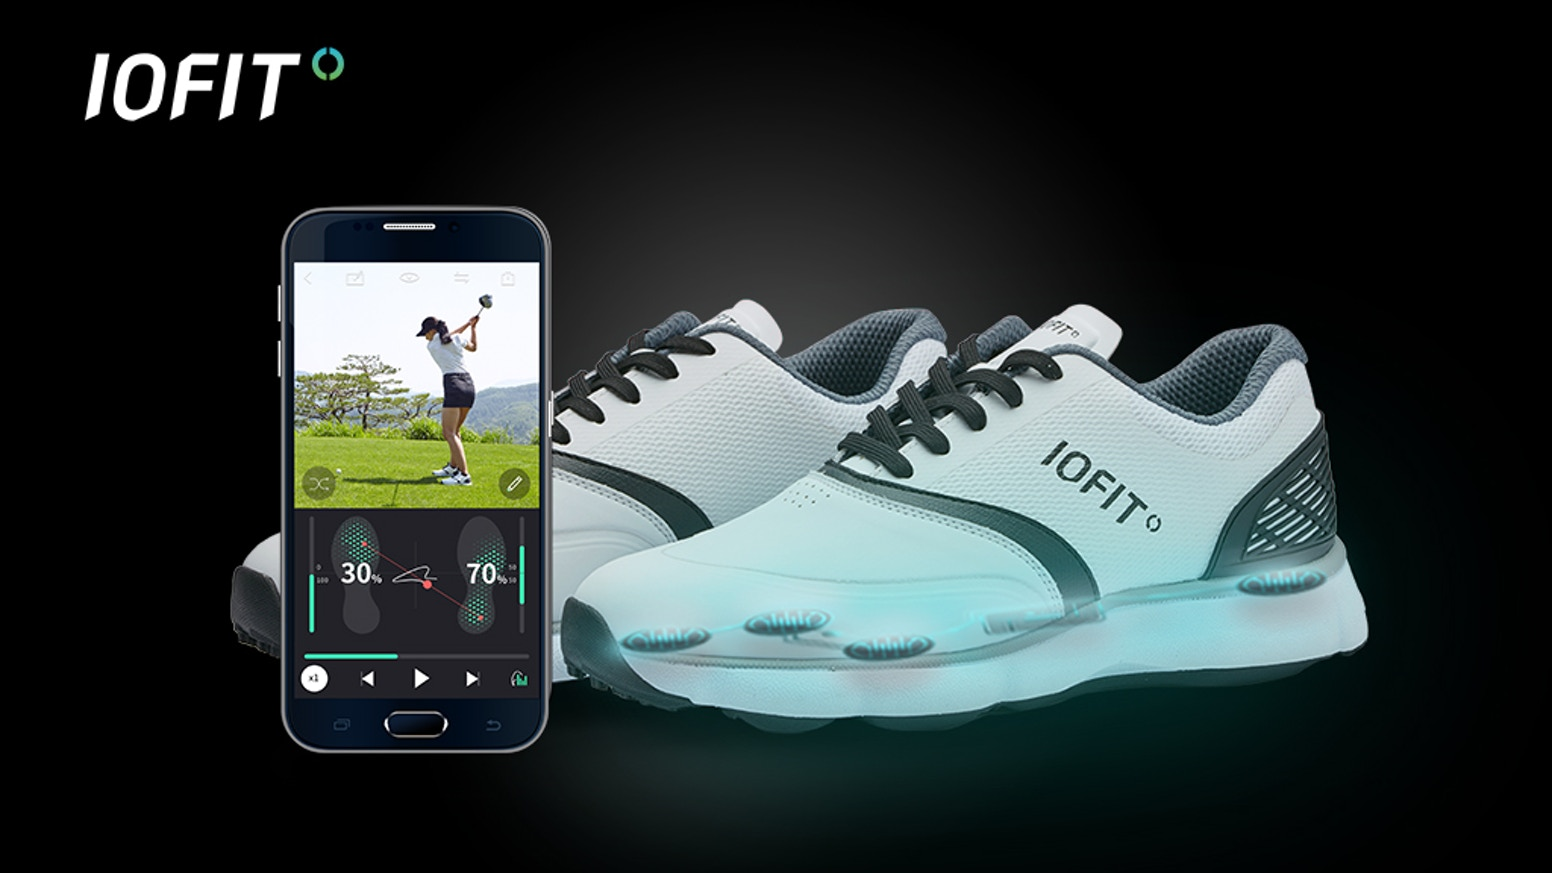 IOFIT is the world's first smart shoes that helps golfers quickly and smartly improve their game while having fun.